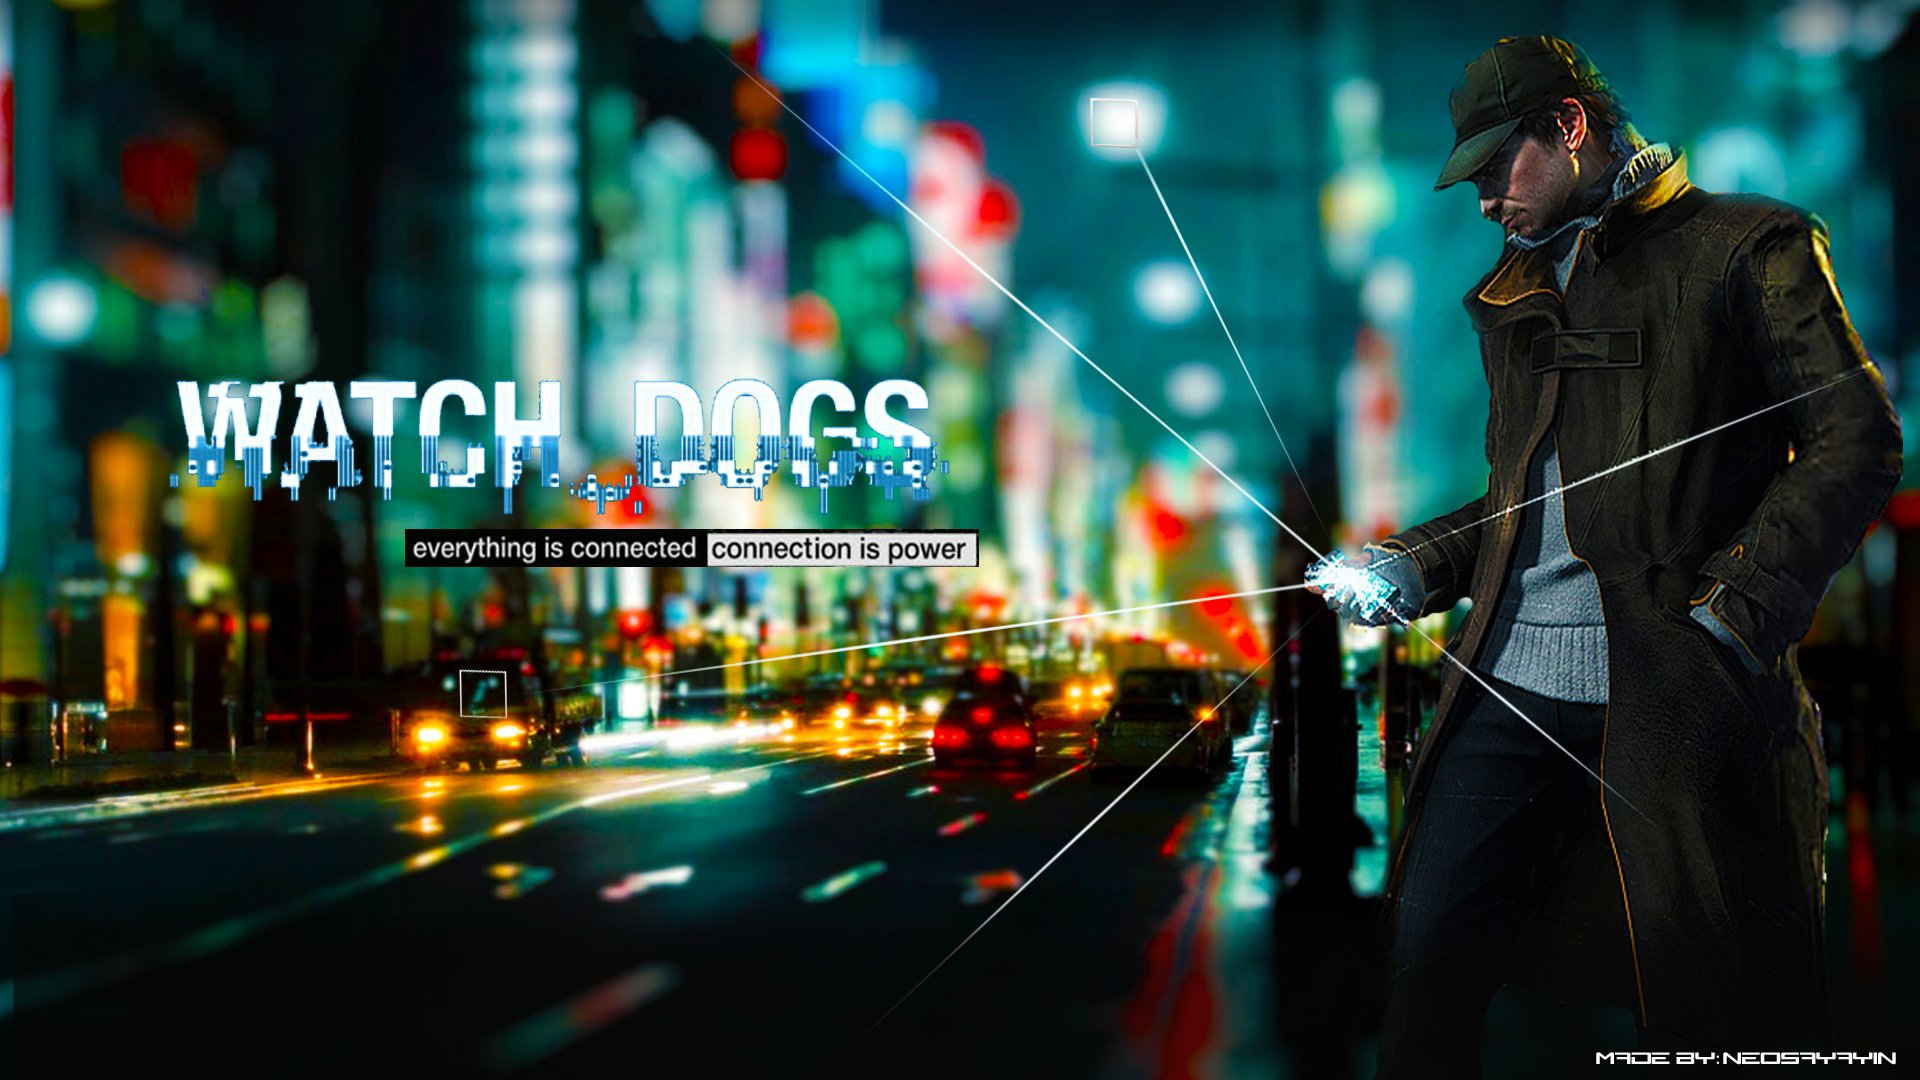 127 Watch Dogs Hd Wallpapers Background Images Wallpaper